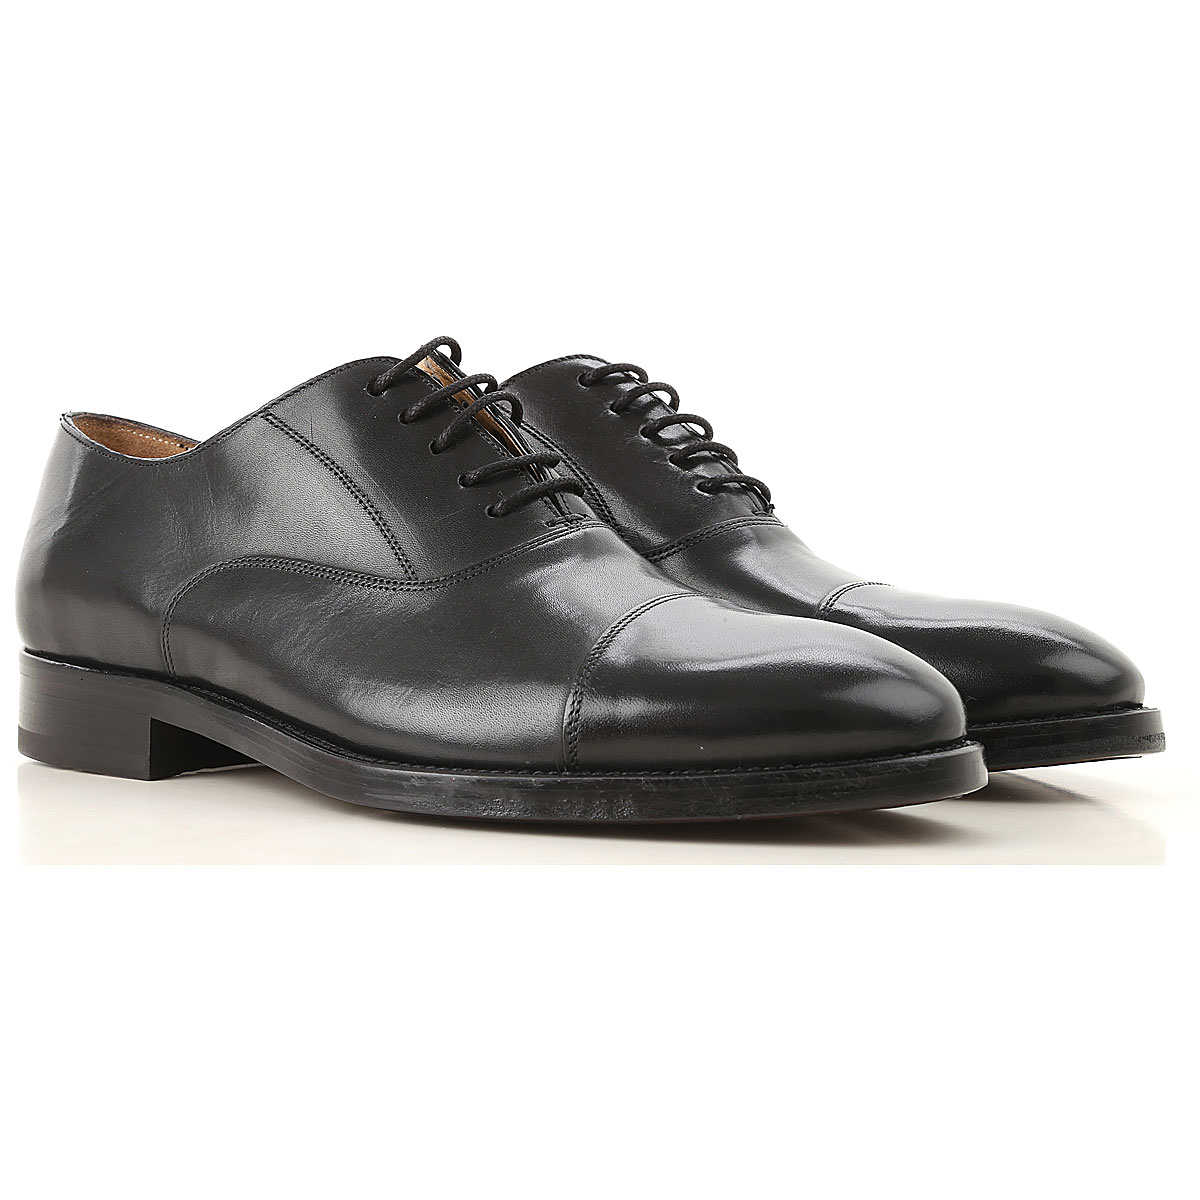 Brecos Lace Up Shoes for Men Oxfords Derbies and Brogues On Sale DK - GOOFASH - Mens FORMAL SHOES